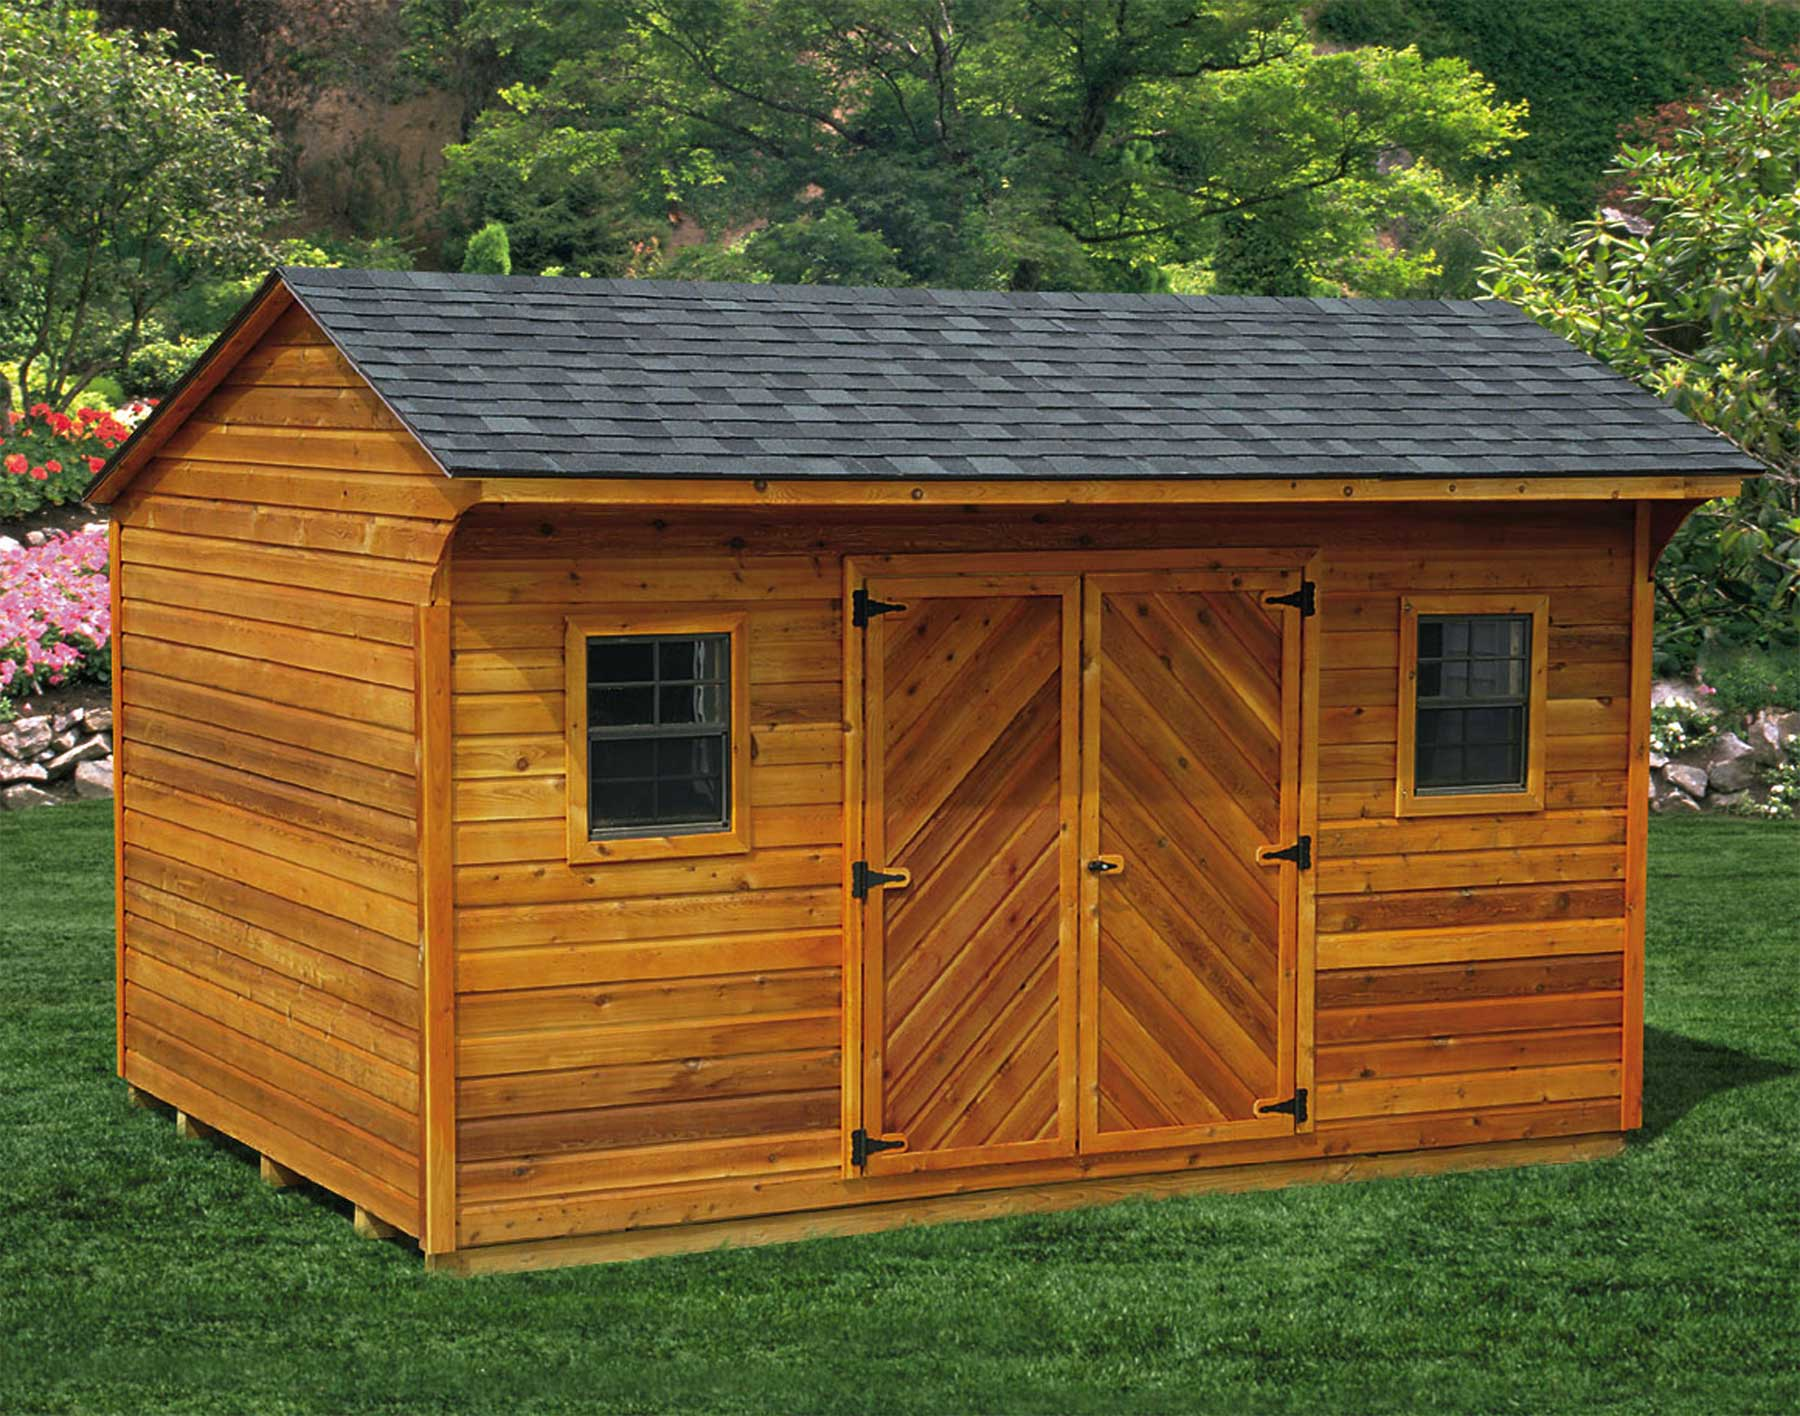 Simple storage shed designs for your backyard cool shed - Garden storage shed ideas ...